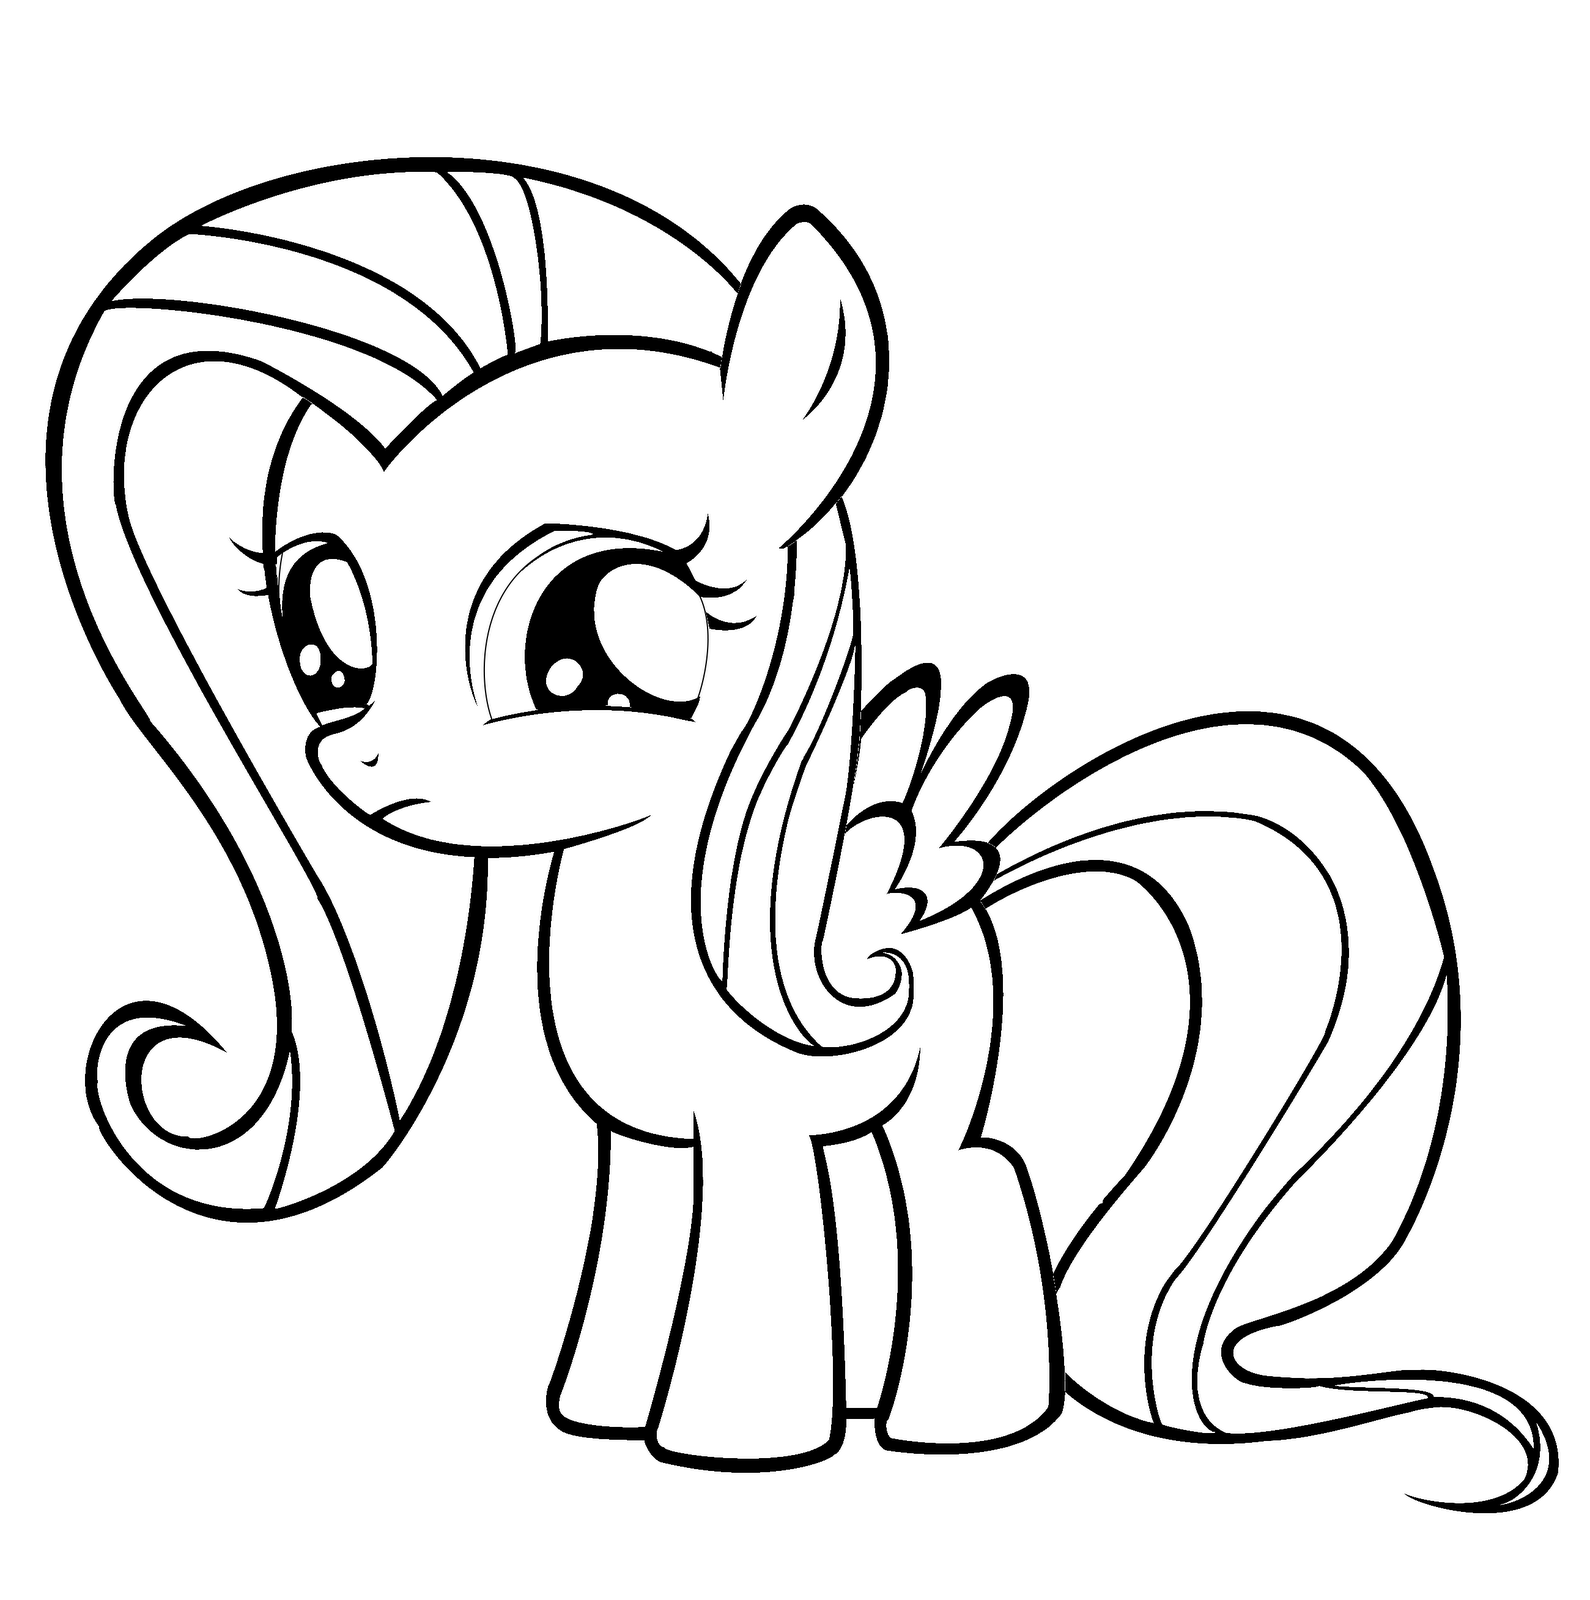 coloring pages of fluttershy fluttershy my little pony coloring page my little pony fluttershy pages coloring of